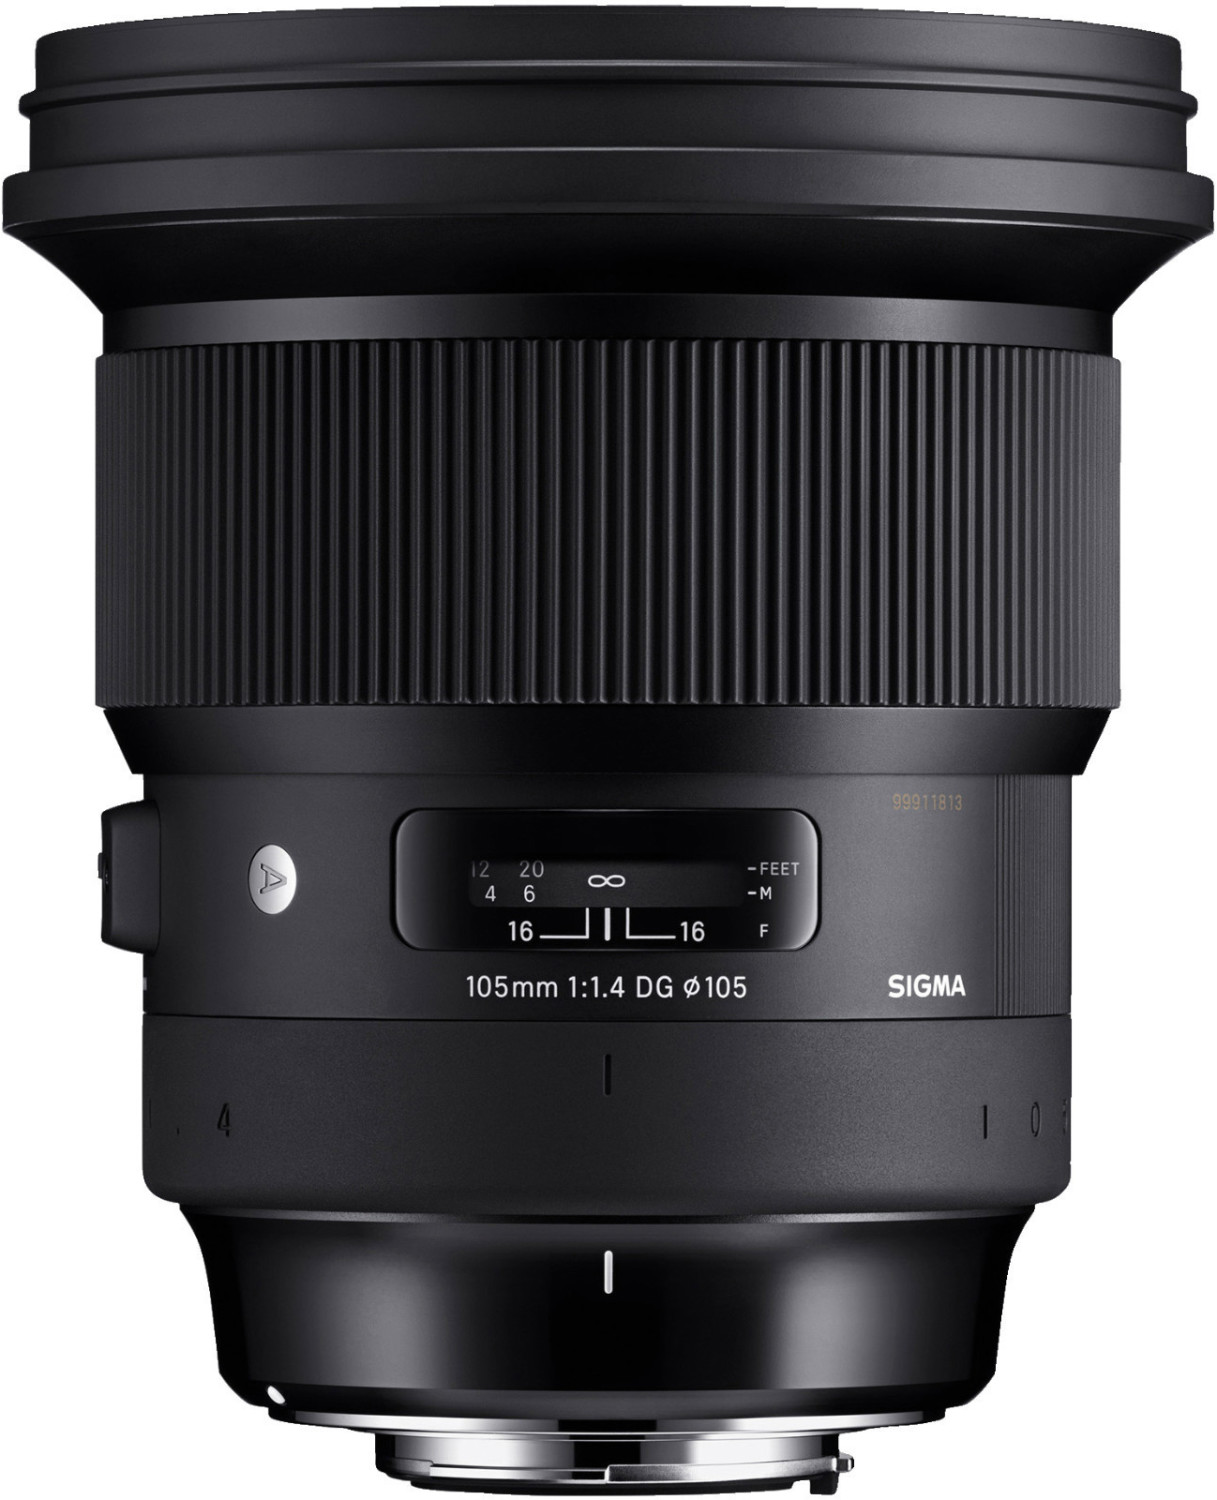 #Sigma 105mm F1.4 DG HSM Art Sony E#